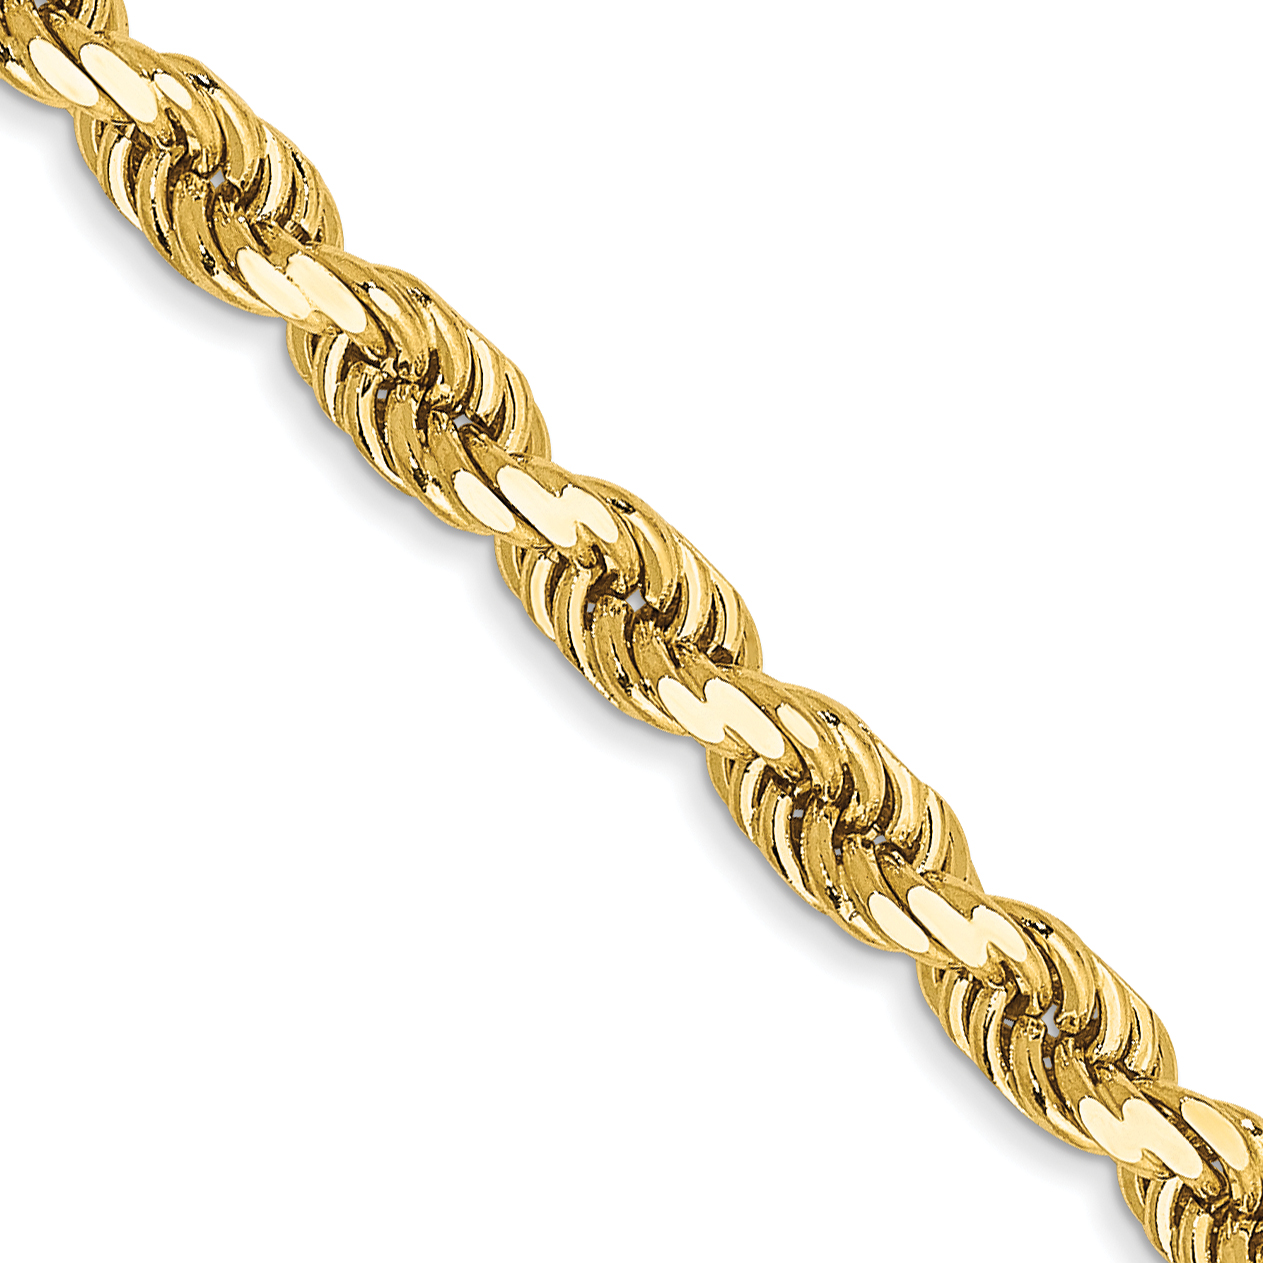 14k 16 Inch 3.5mm Diamond-cut Rope with Lobster Clasp Chain